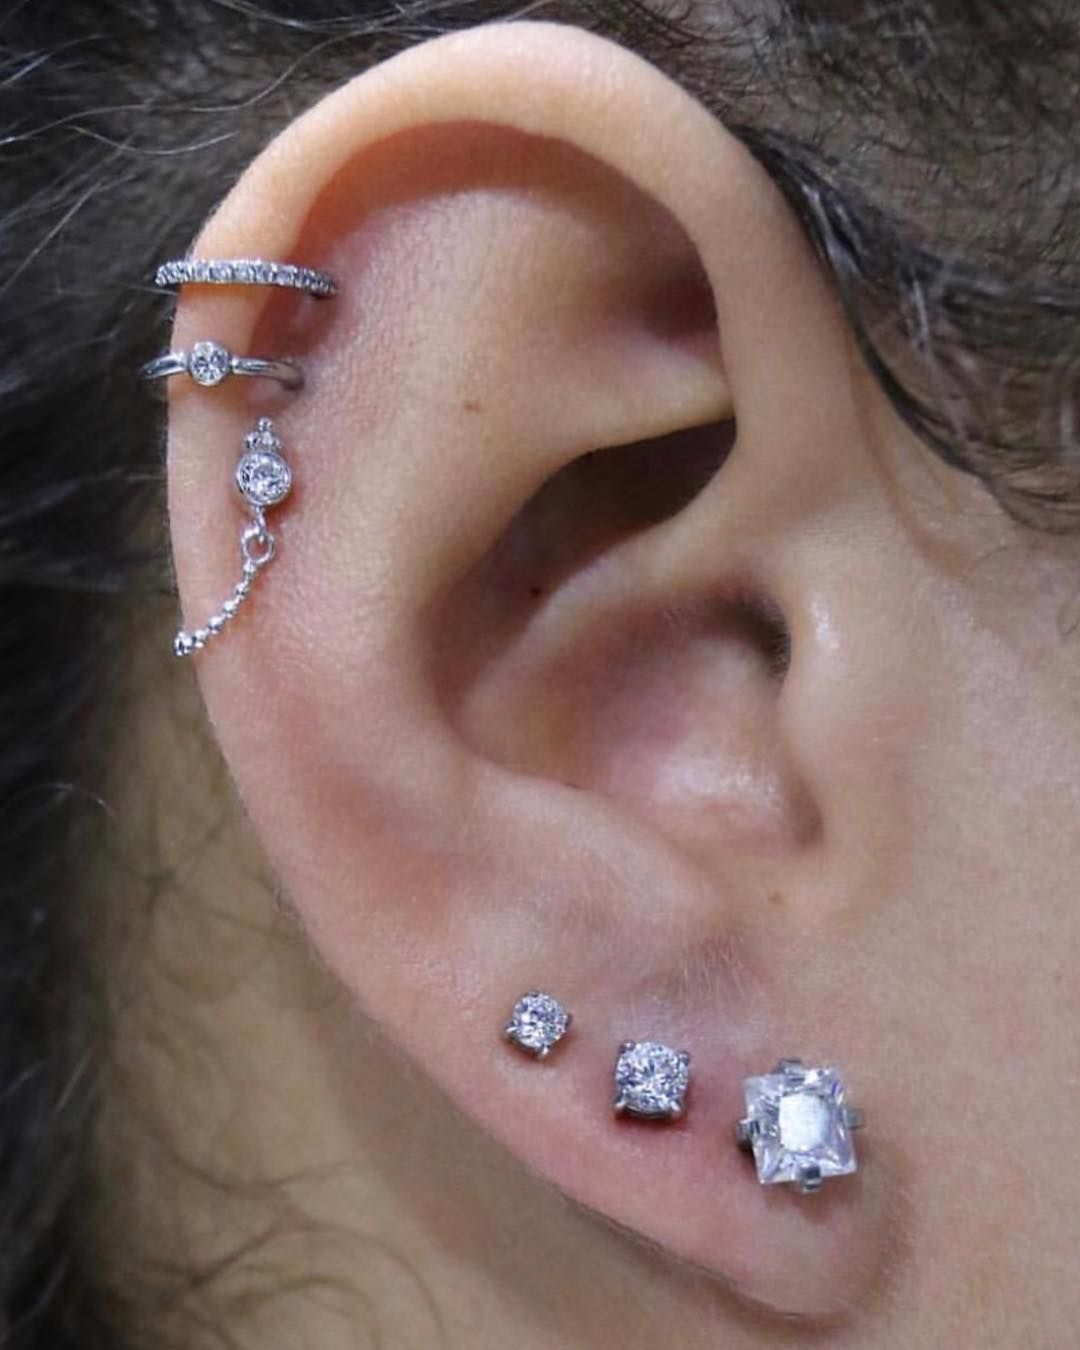 New piercing ideas   Likes  Comments  INDUSTRIE industriebodypiercing on